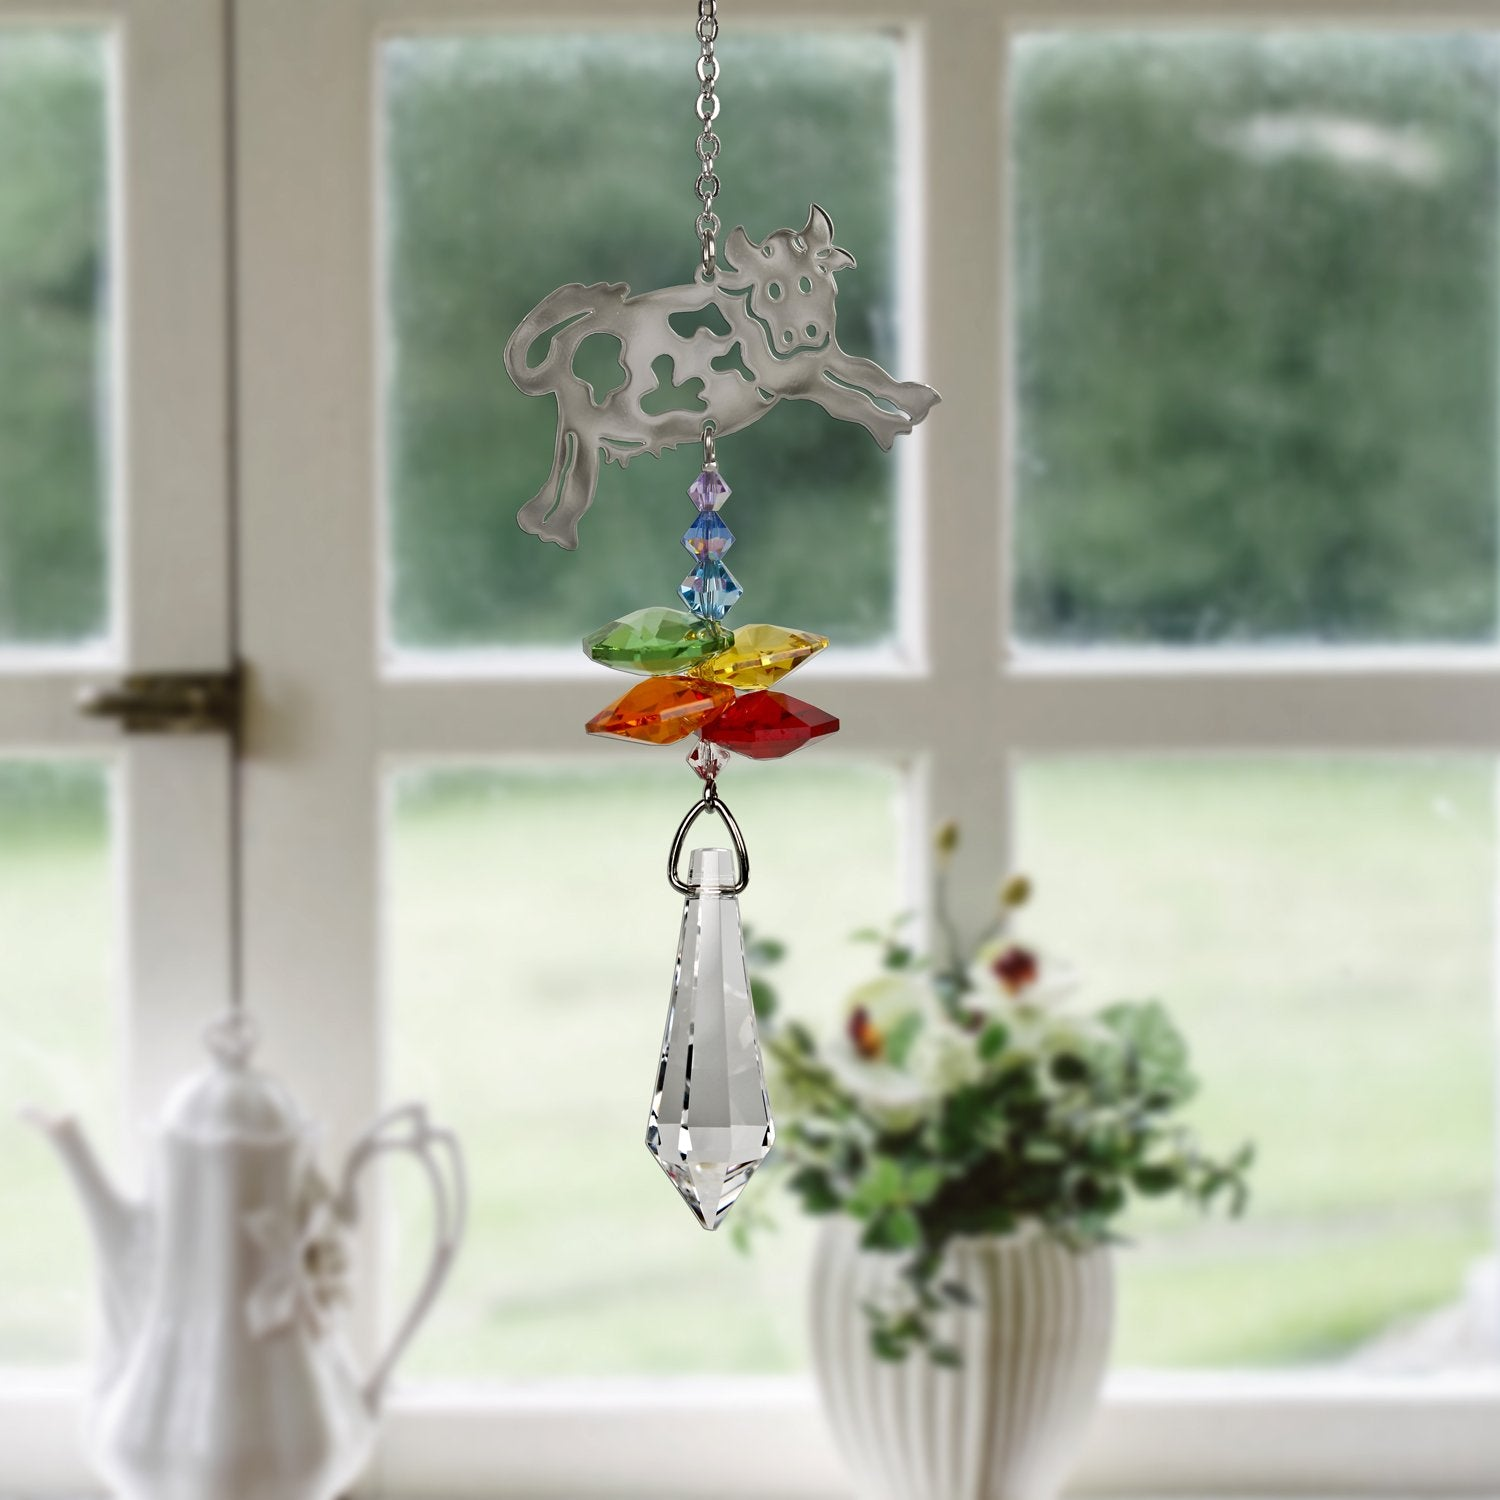 Crystal Fantasy Suncatcher - Cow lifestyle image